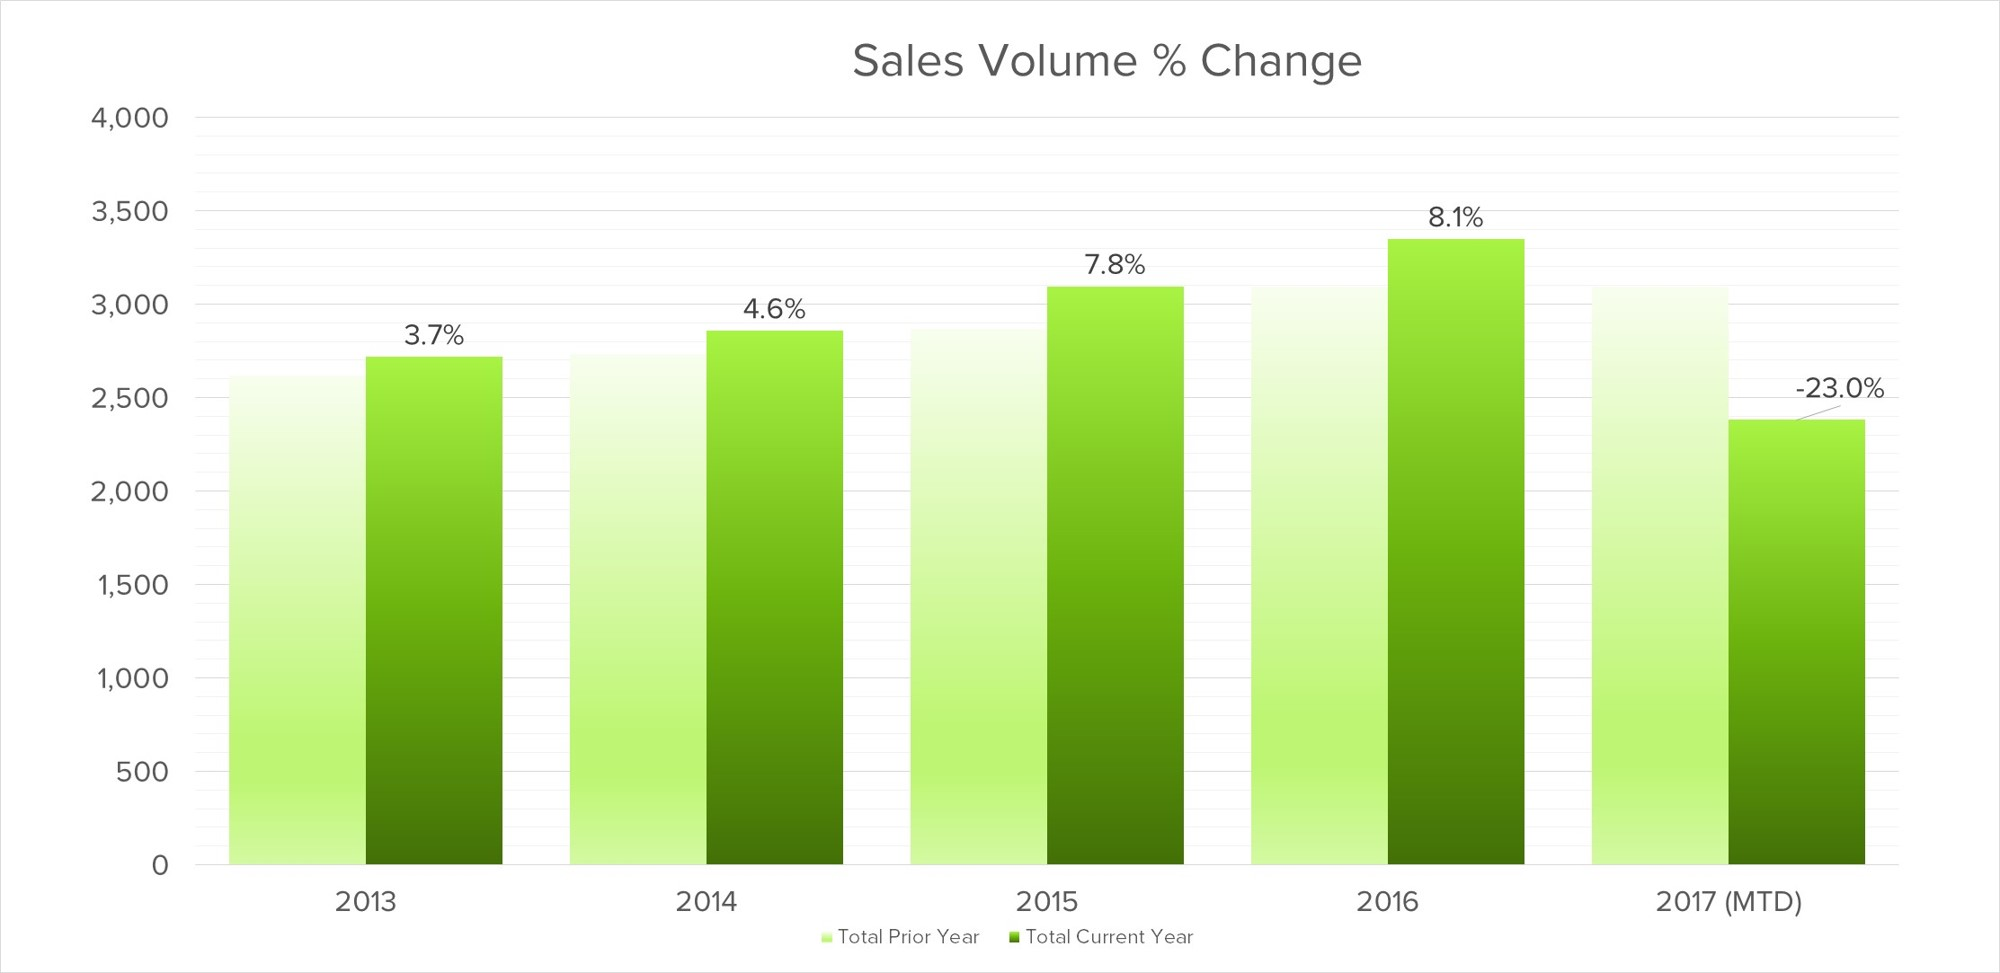 oakville-sales-volumes-percentage-change.jpg